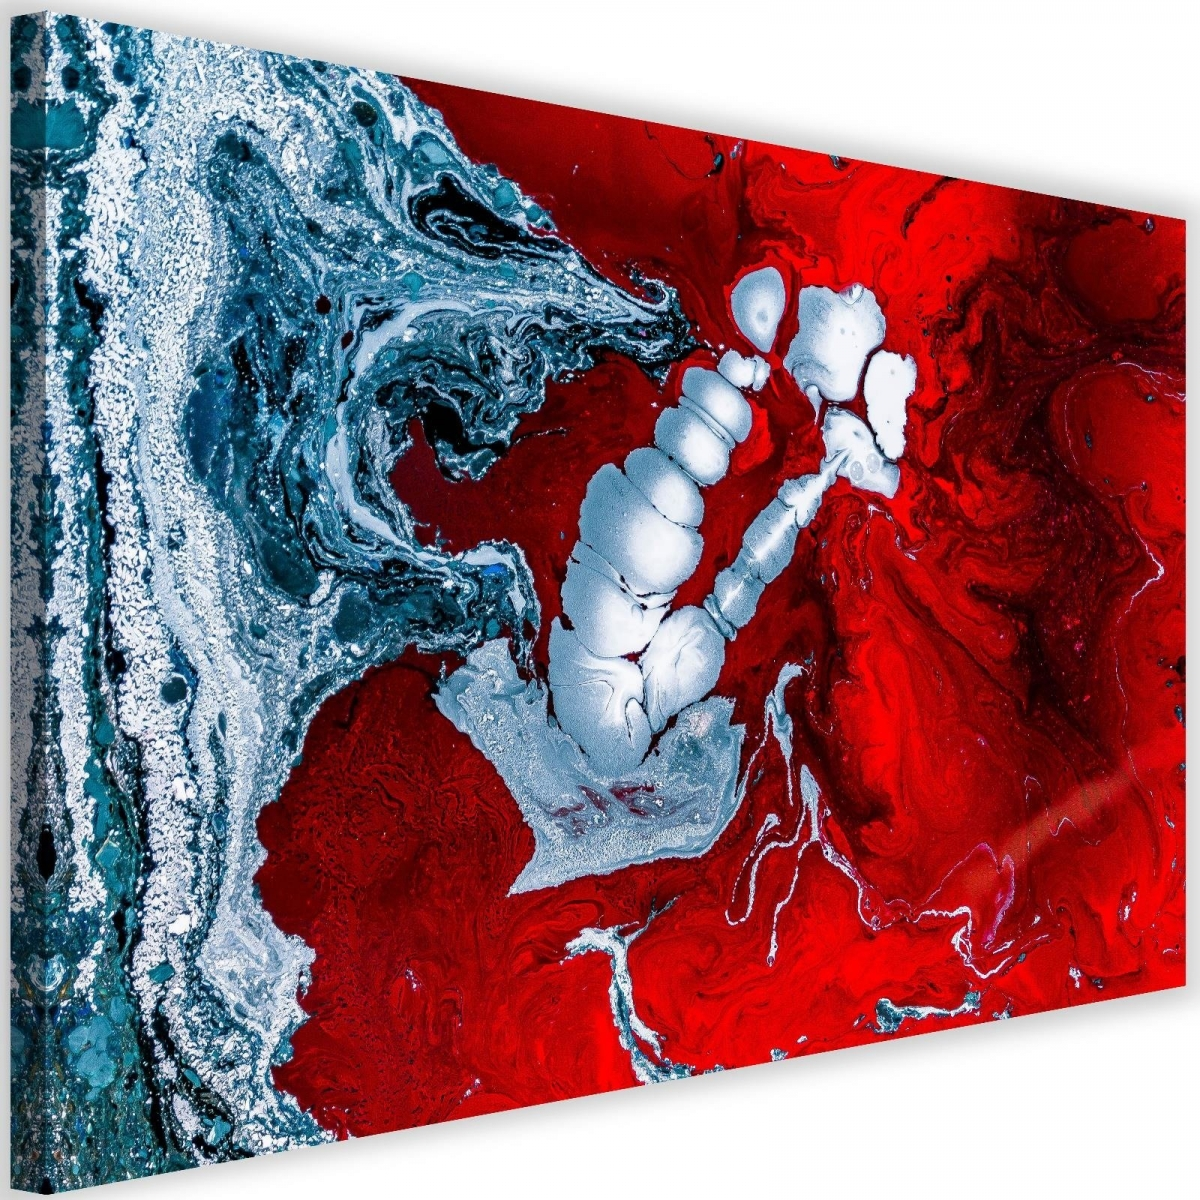 Canvas, Red Abstraction120x80